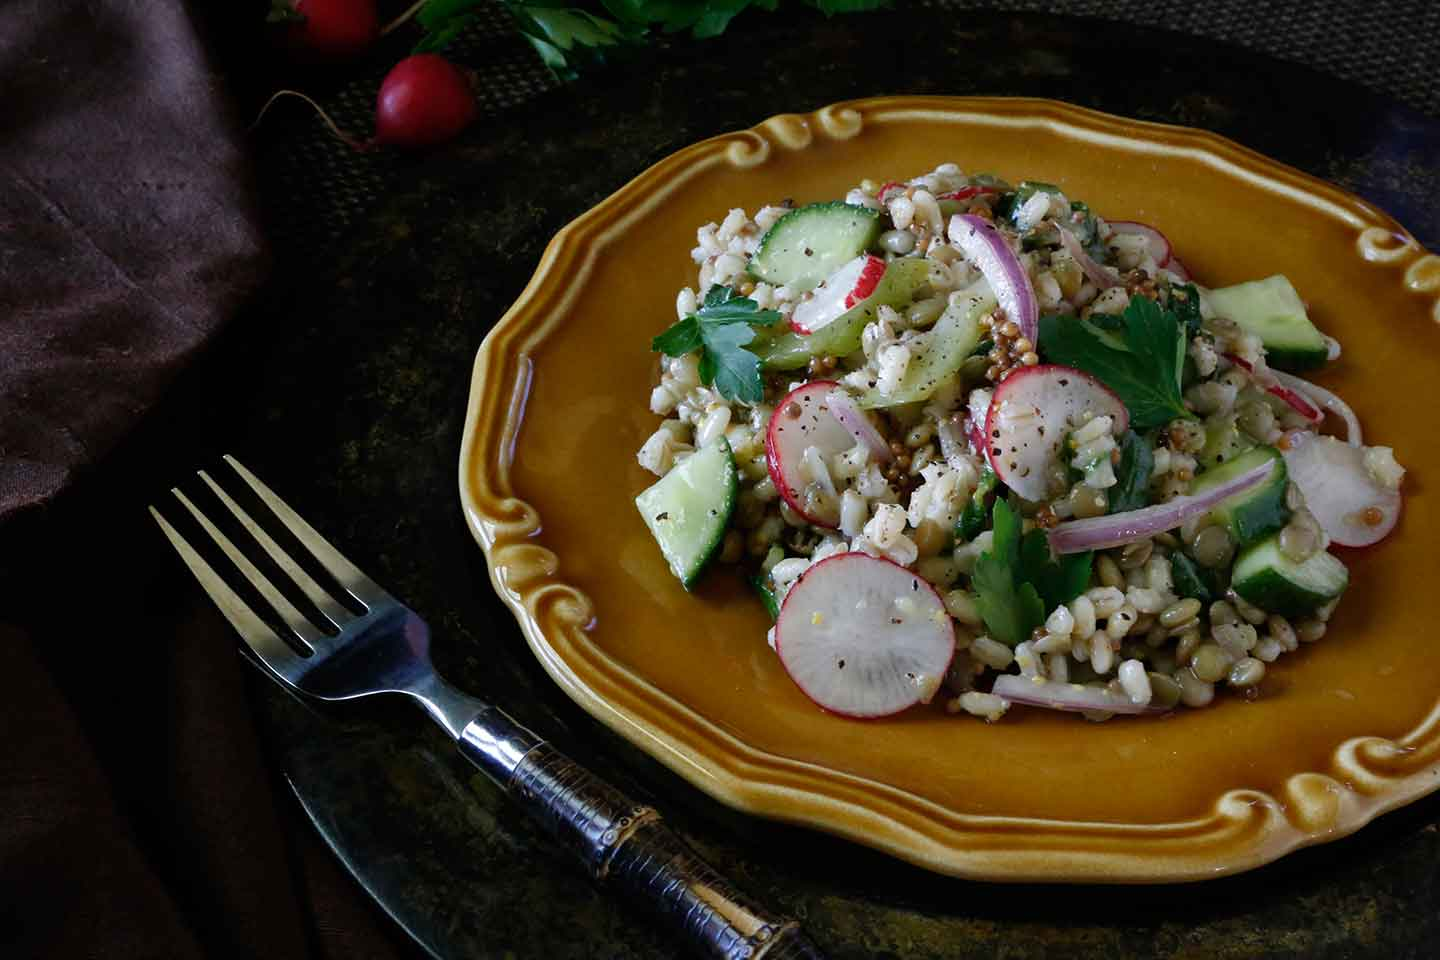 lentil & pearl barley spring salad with pickled mustard seeds